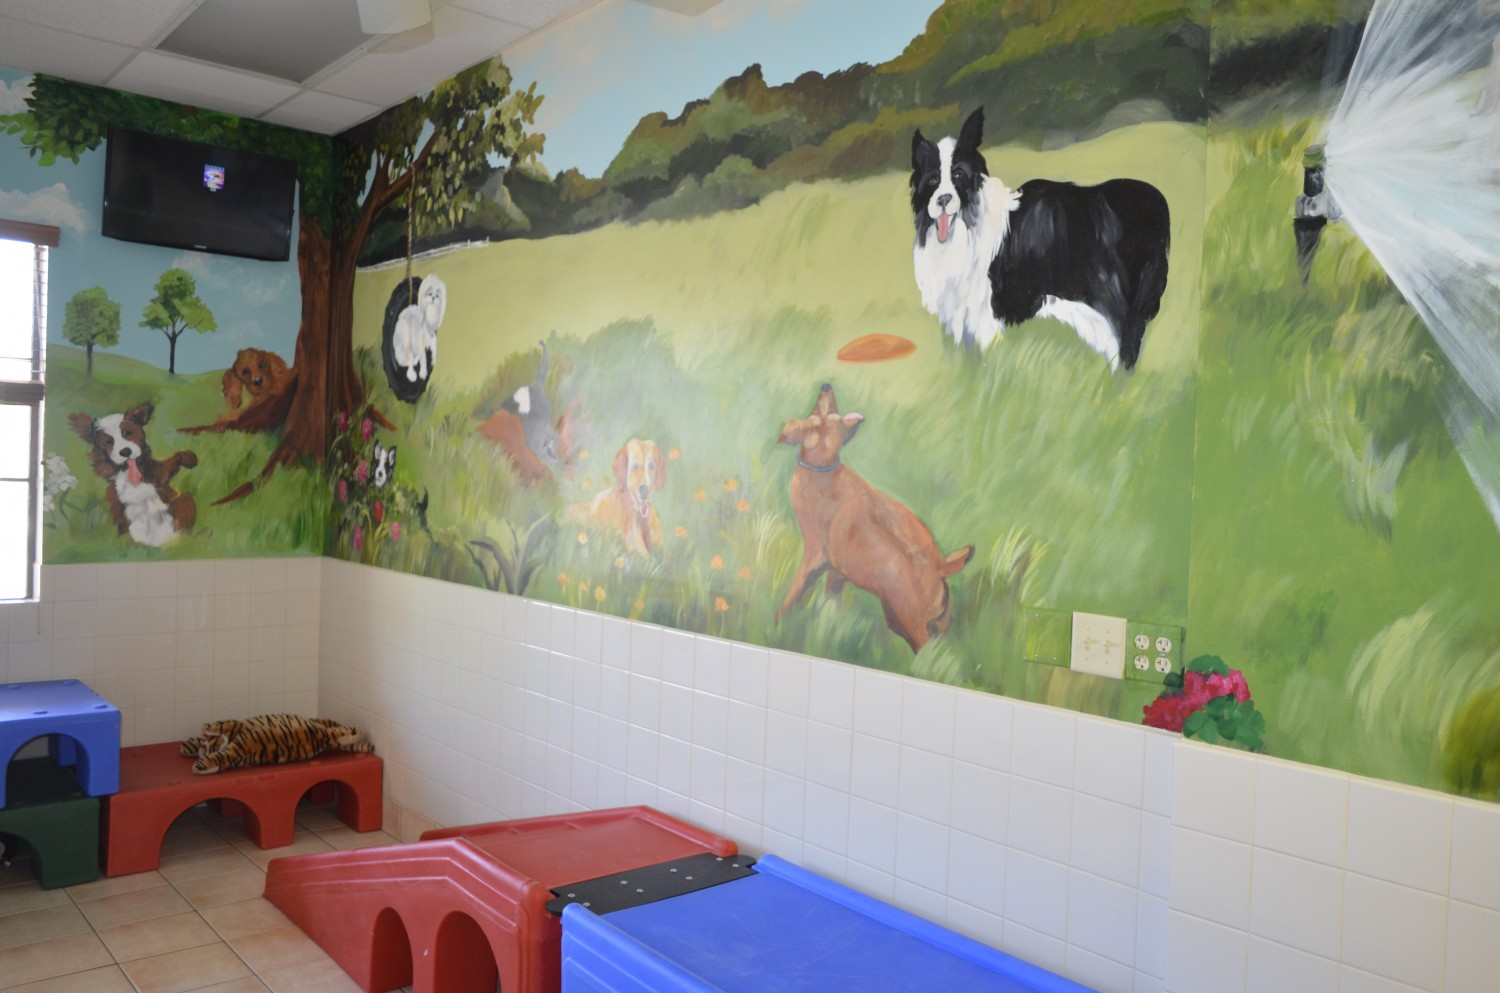 Indoor play area at Ahwatukee Animal Care Hospital